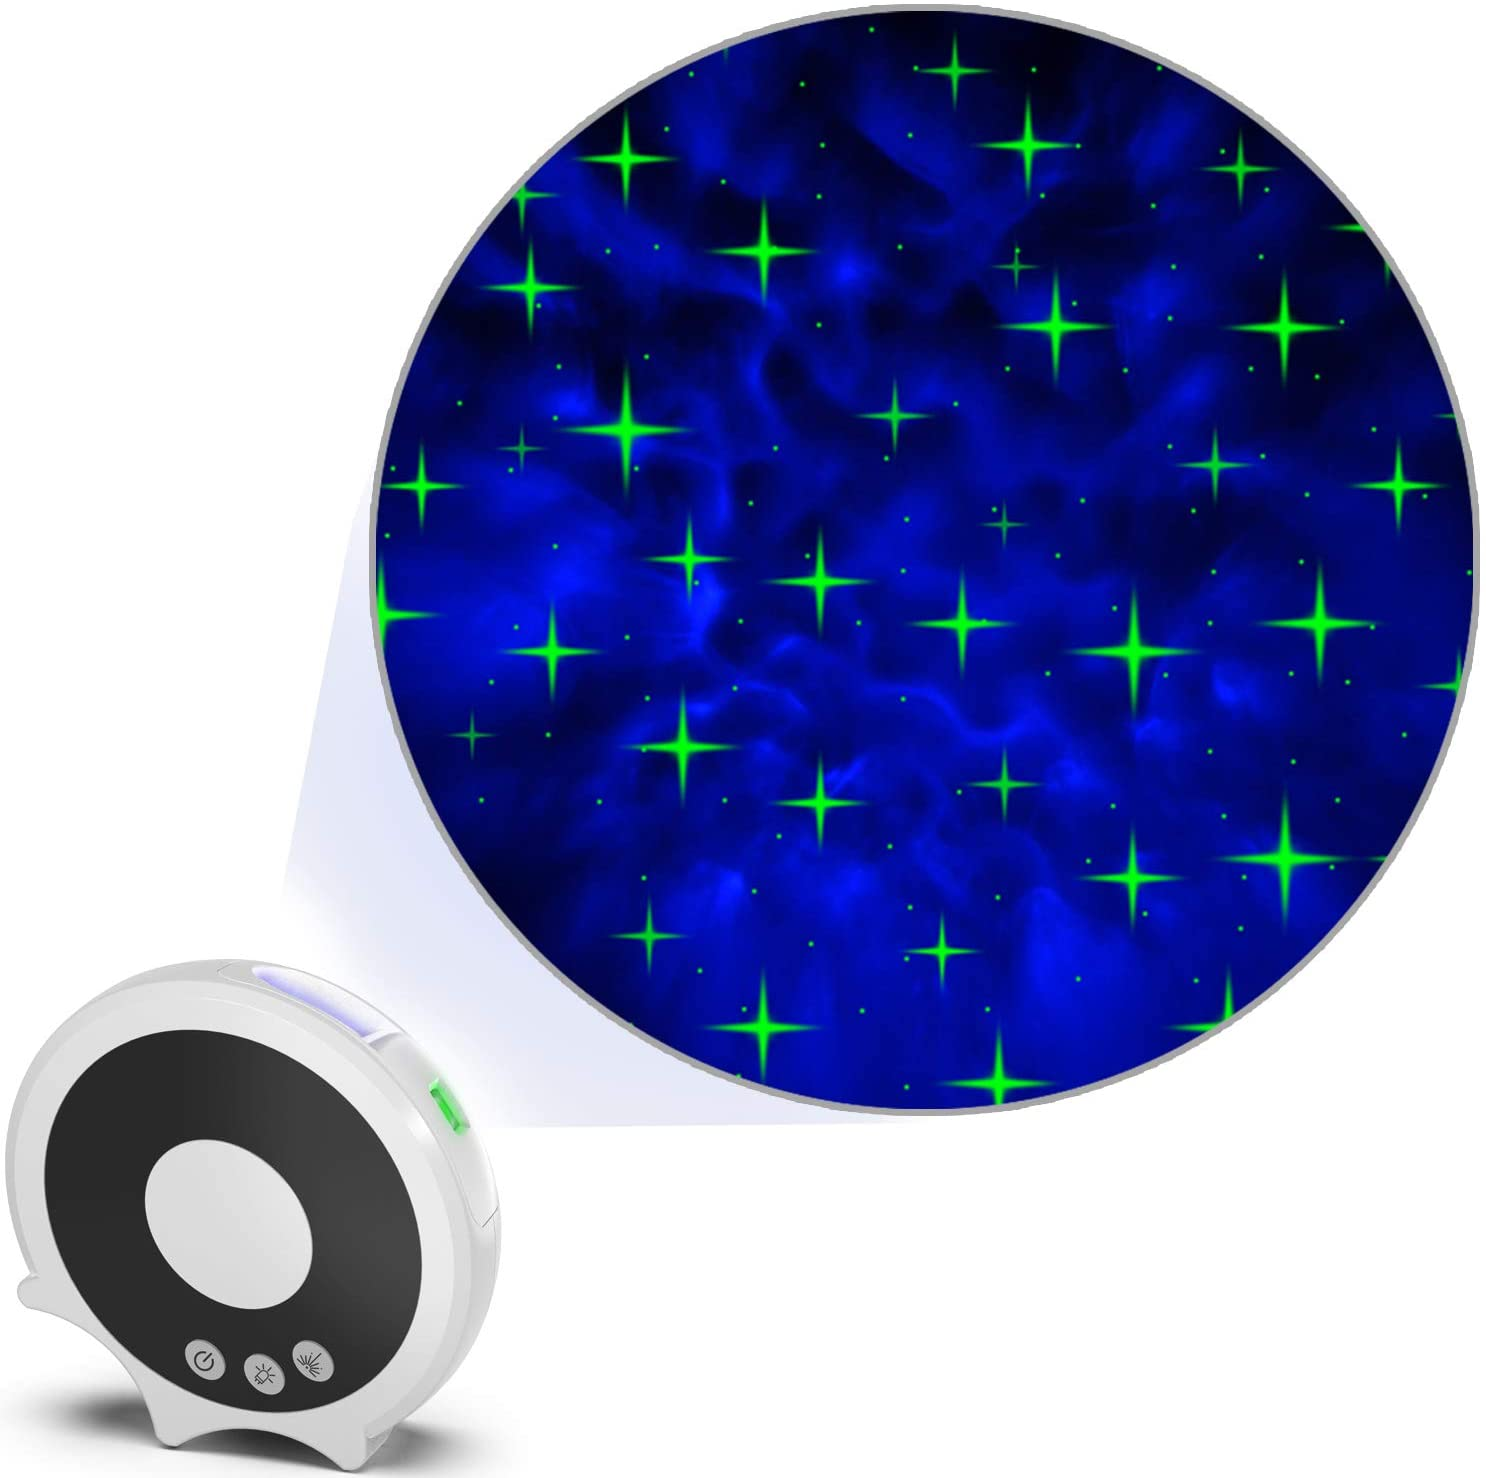 Night Lights for Room, STARRY Night Light Projector, LED Nebula Projector, Laser Starlight Projector, Cross Star Galaxy Projector for Kids, Bedroom, Room Decoration and Ambiance Enhance